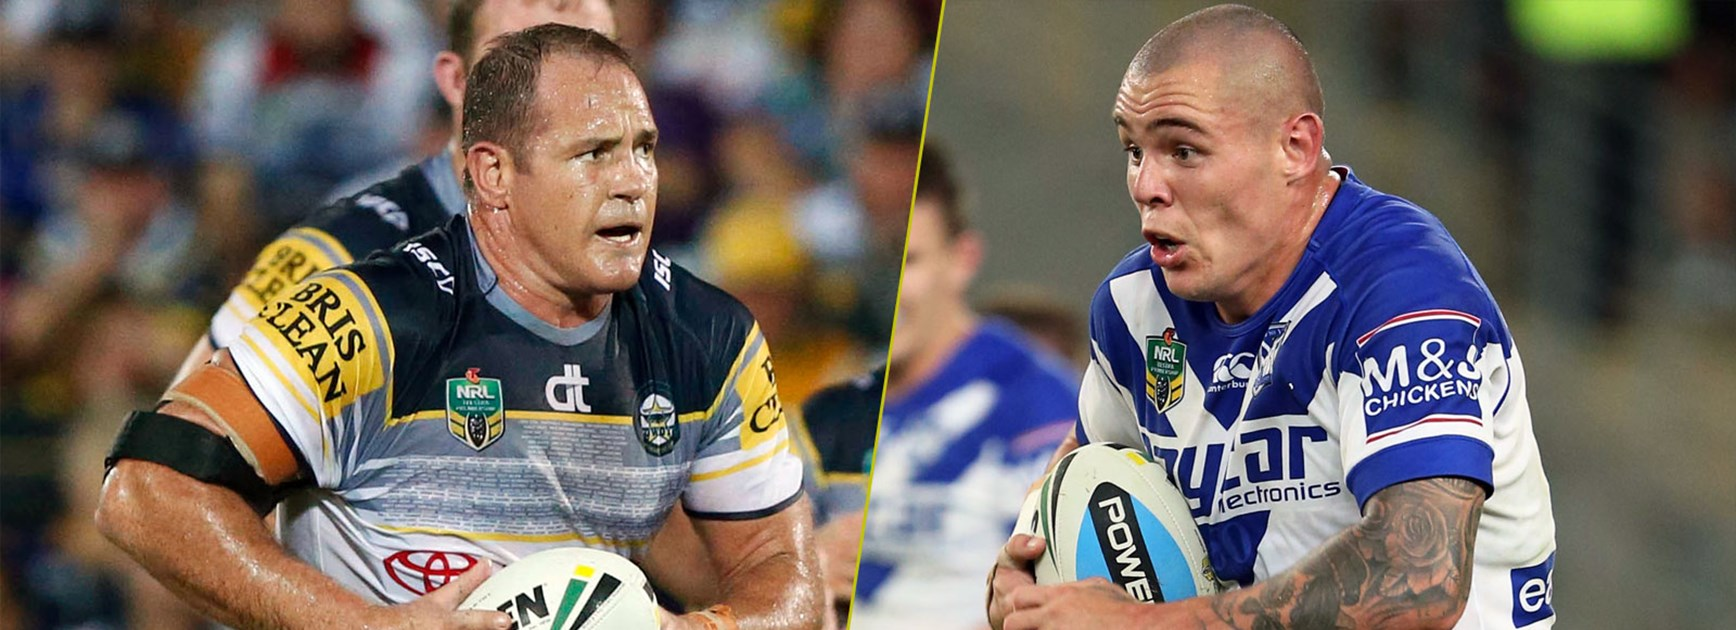 Kangaroos props Matt Scott and David Klemmer go head-to-head this weekend.